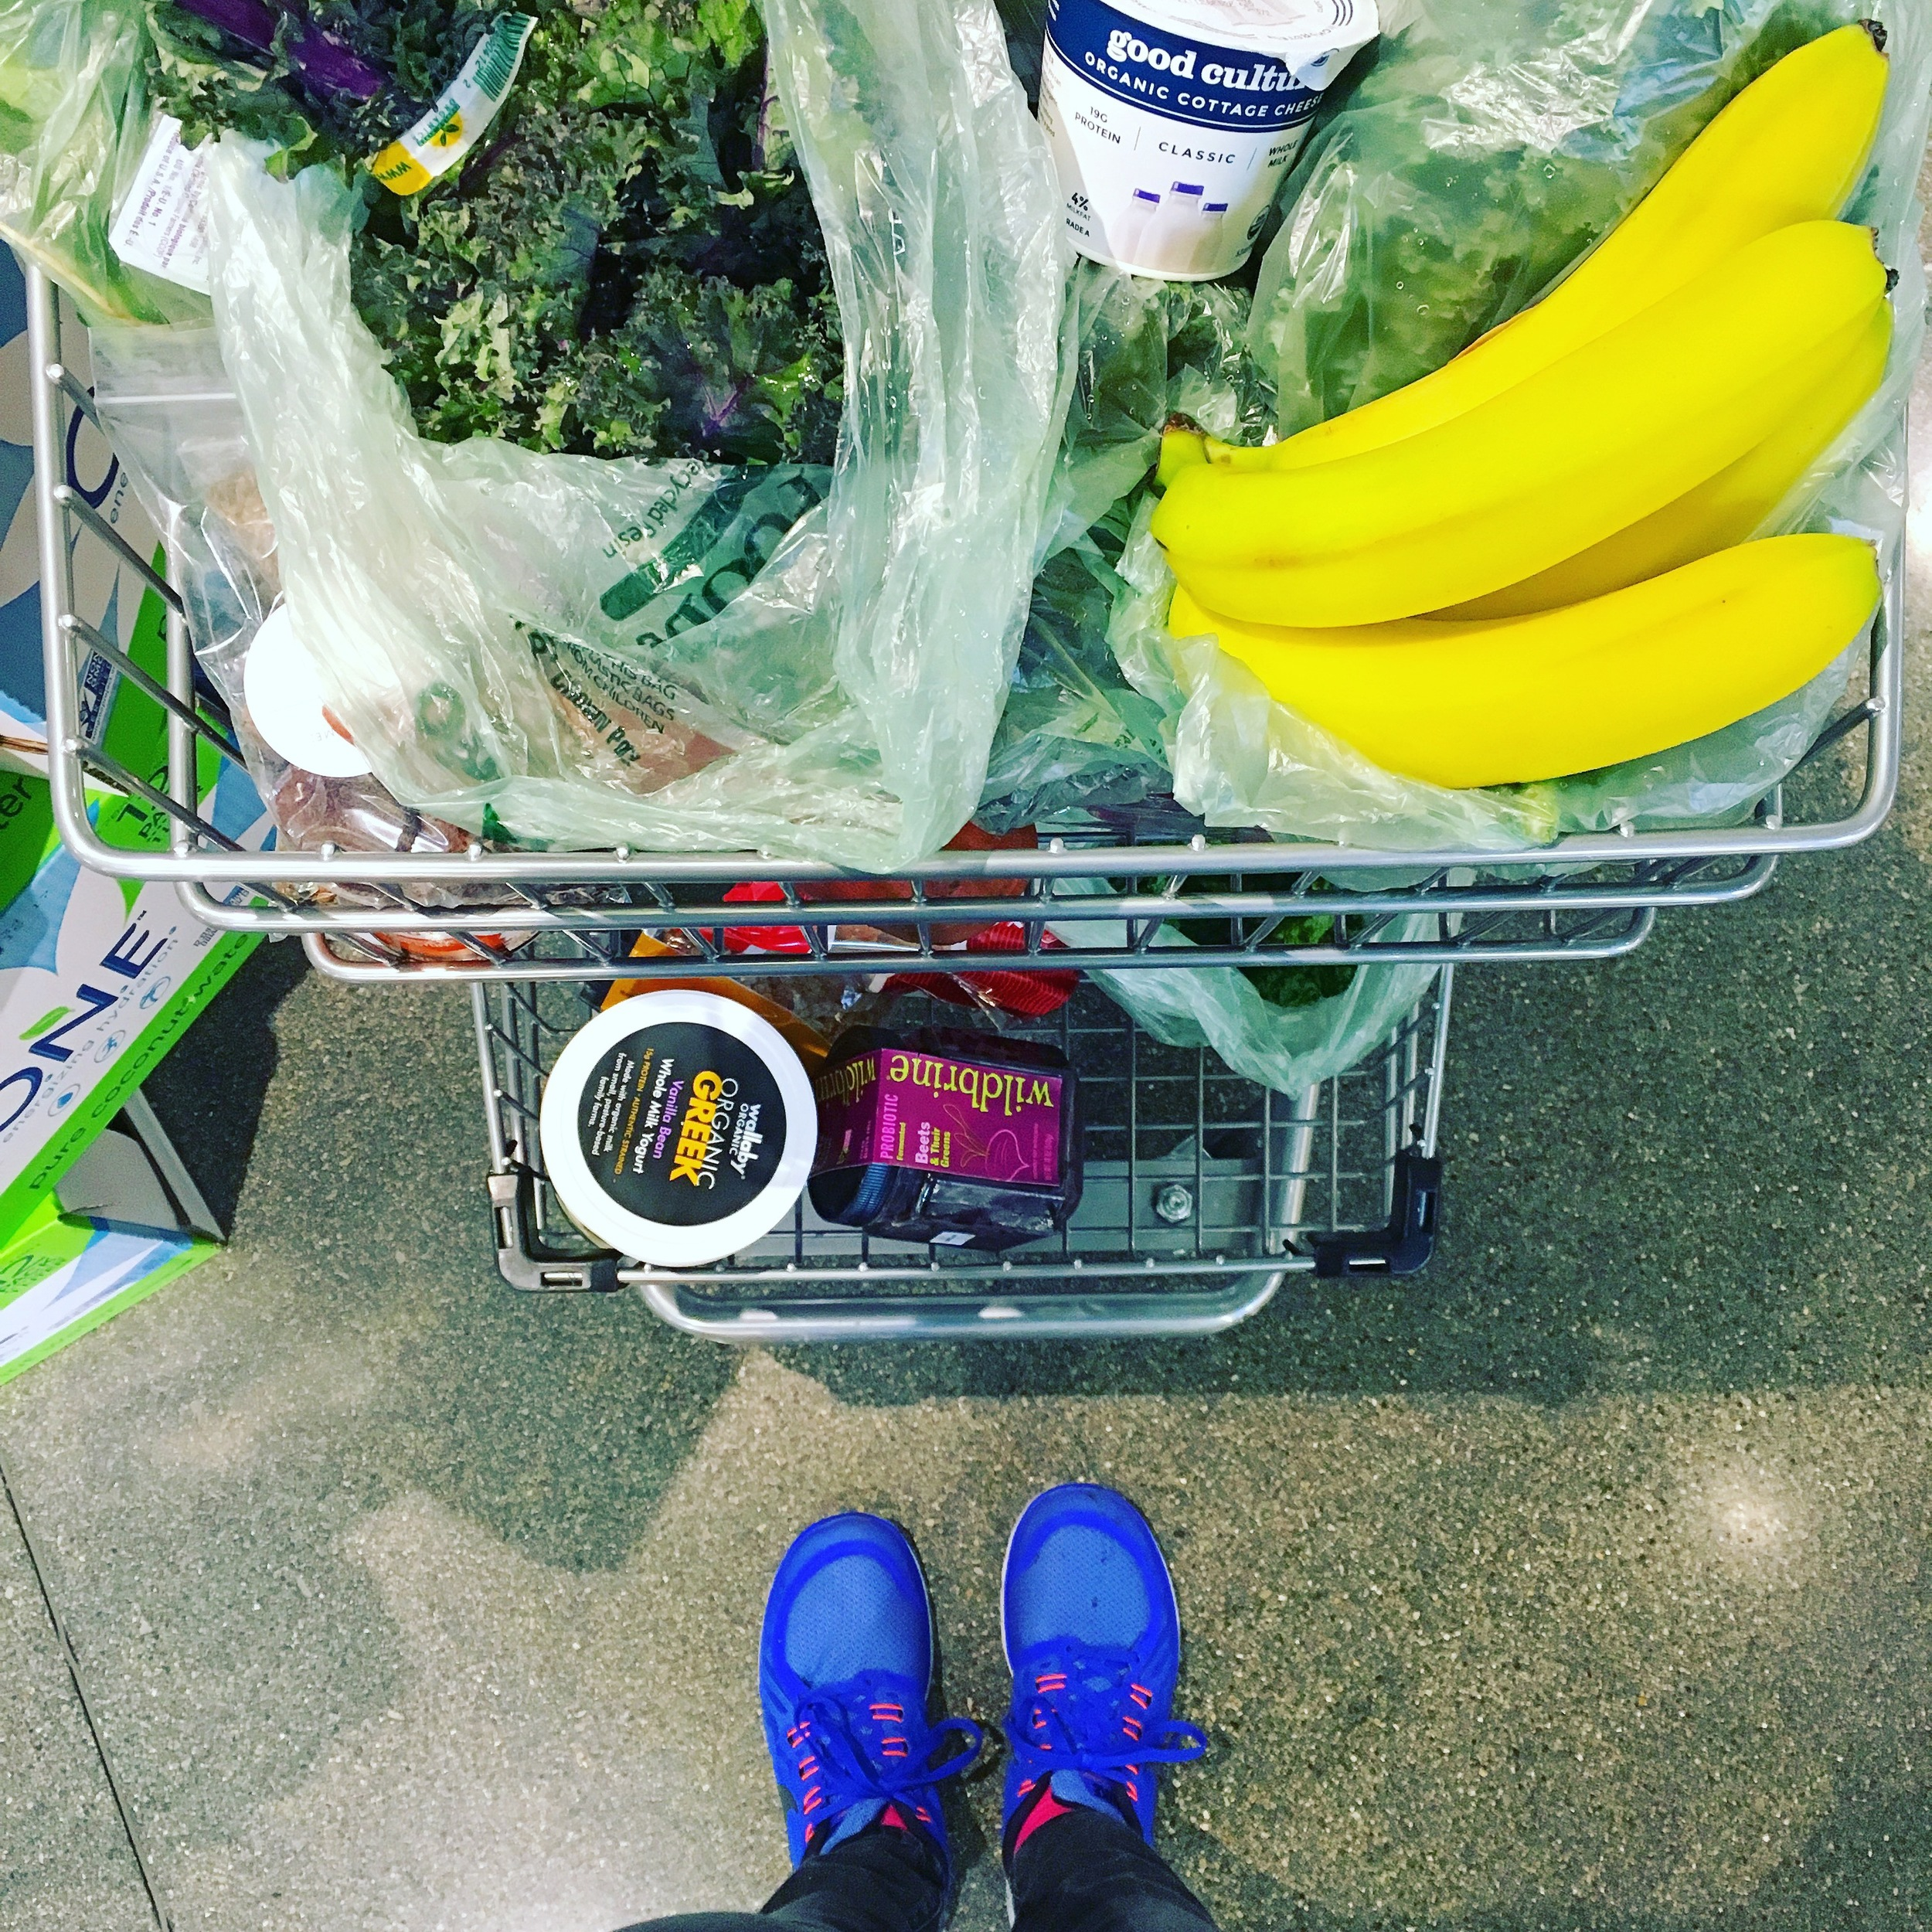 Filling the cart with all good things!